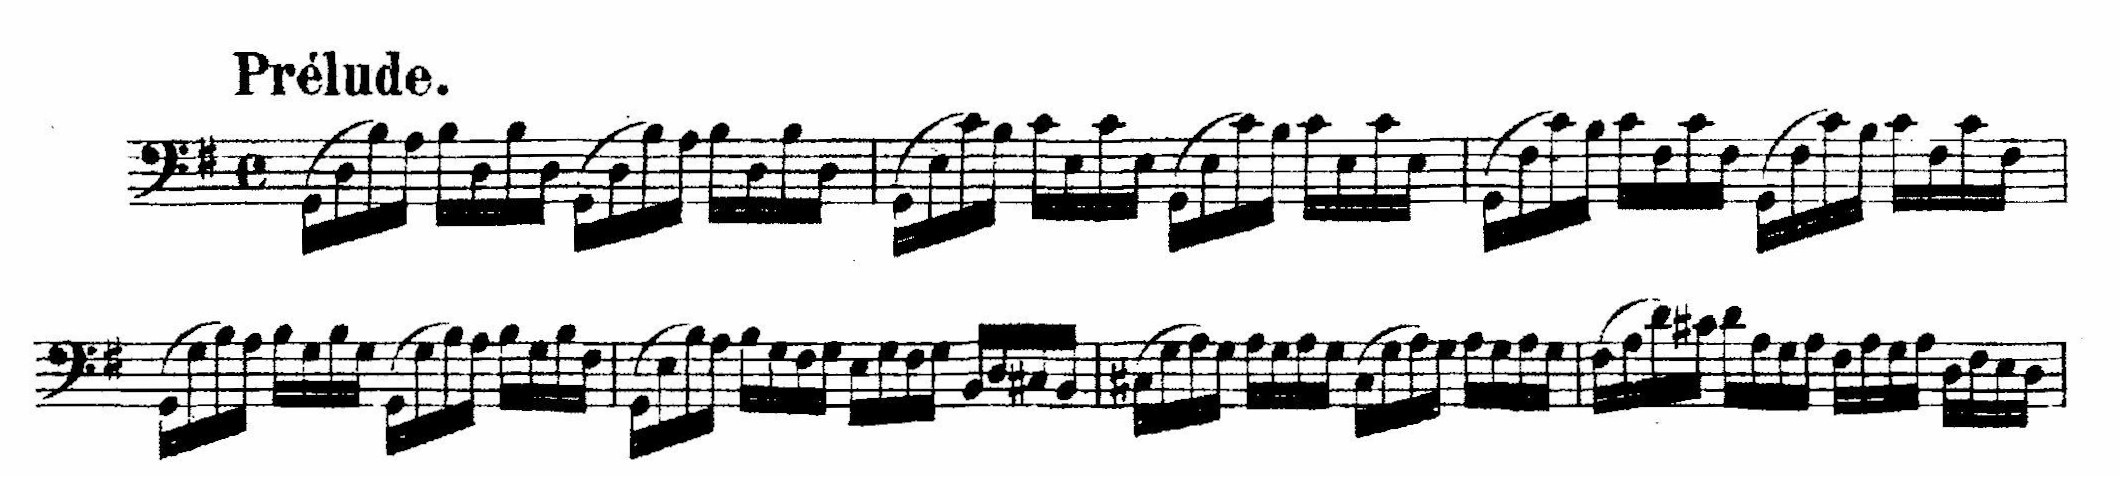 Partita for solo violin No. 3 in E major, BWV 1006